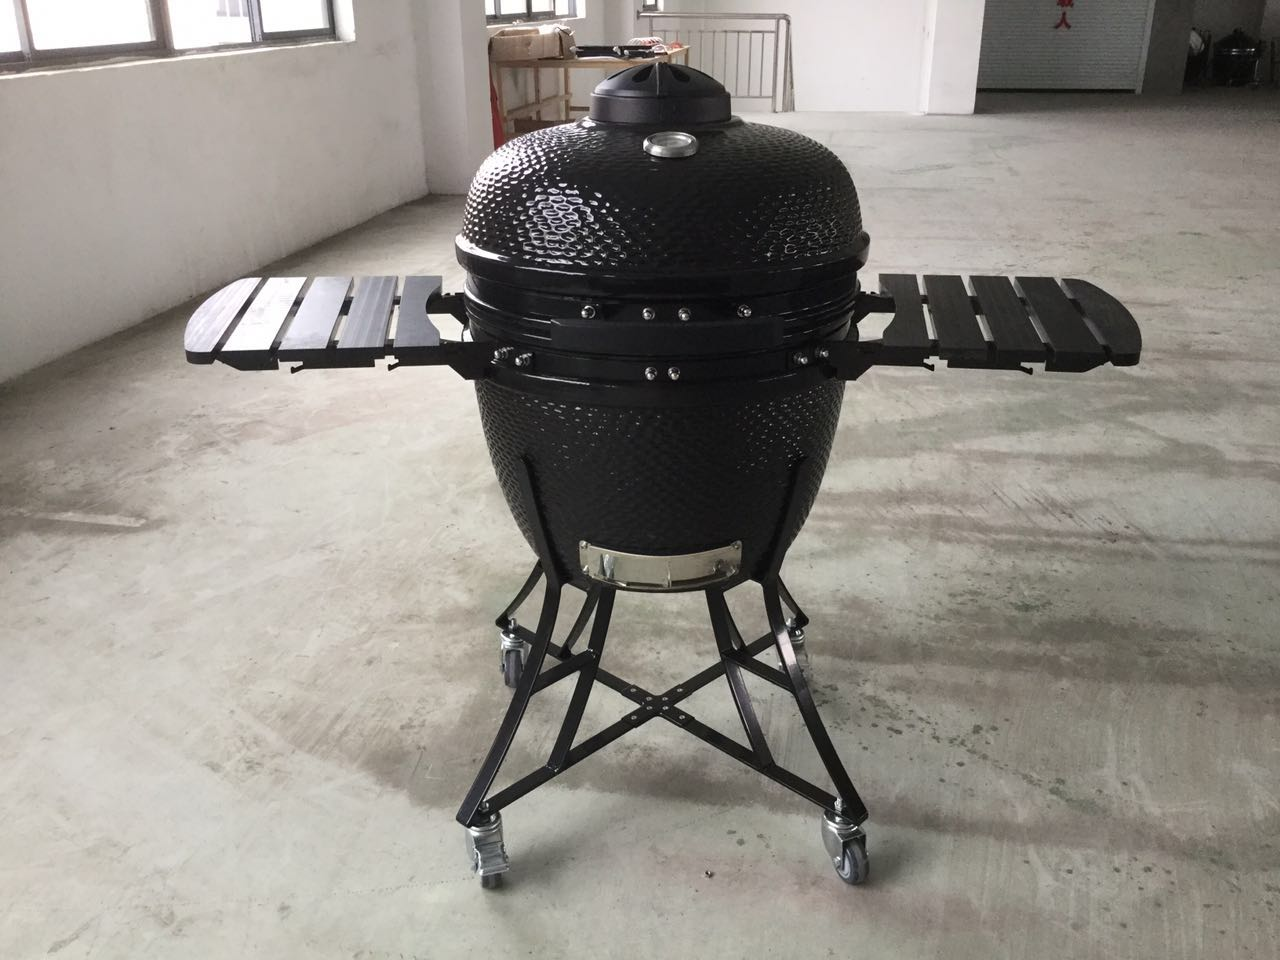 kamado grill with hdpe shelves